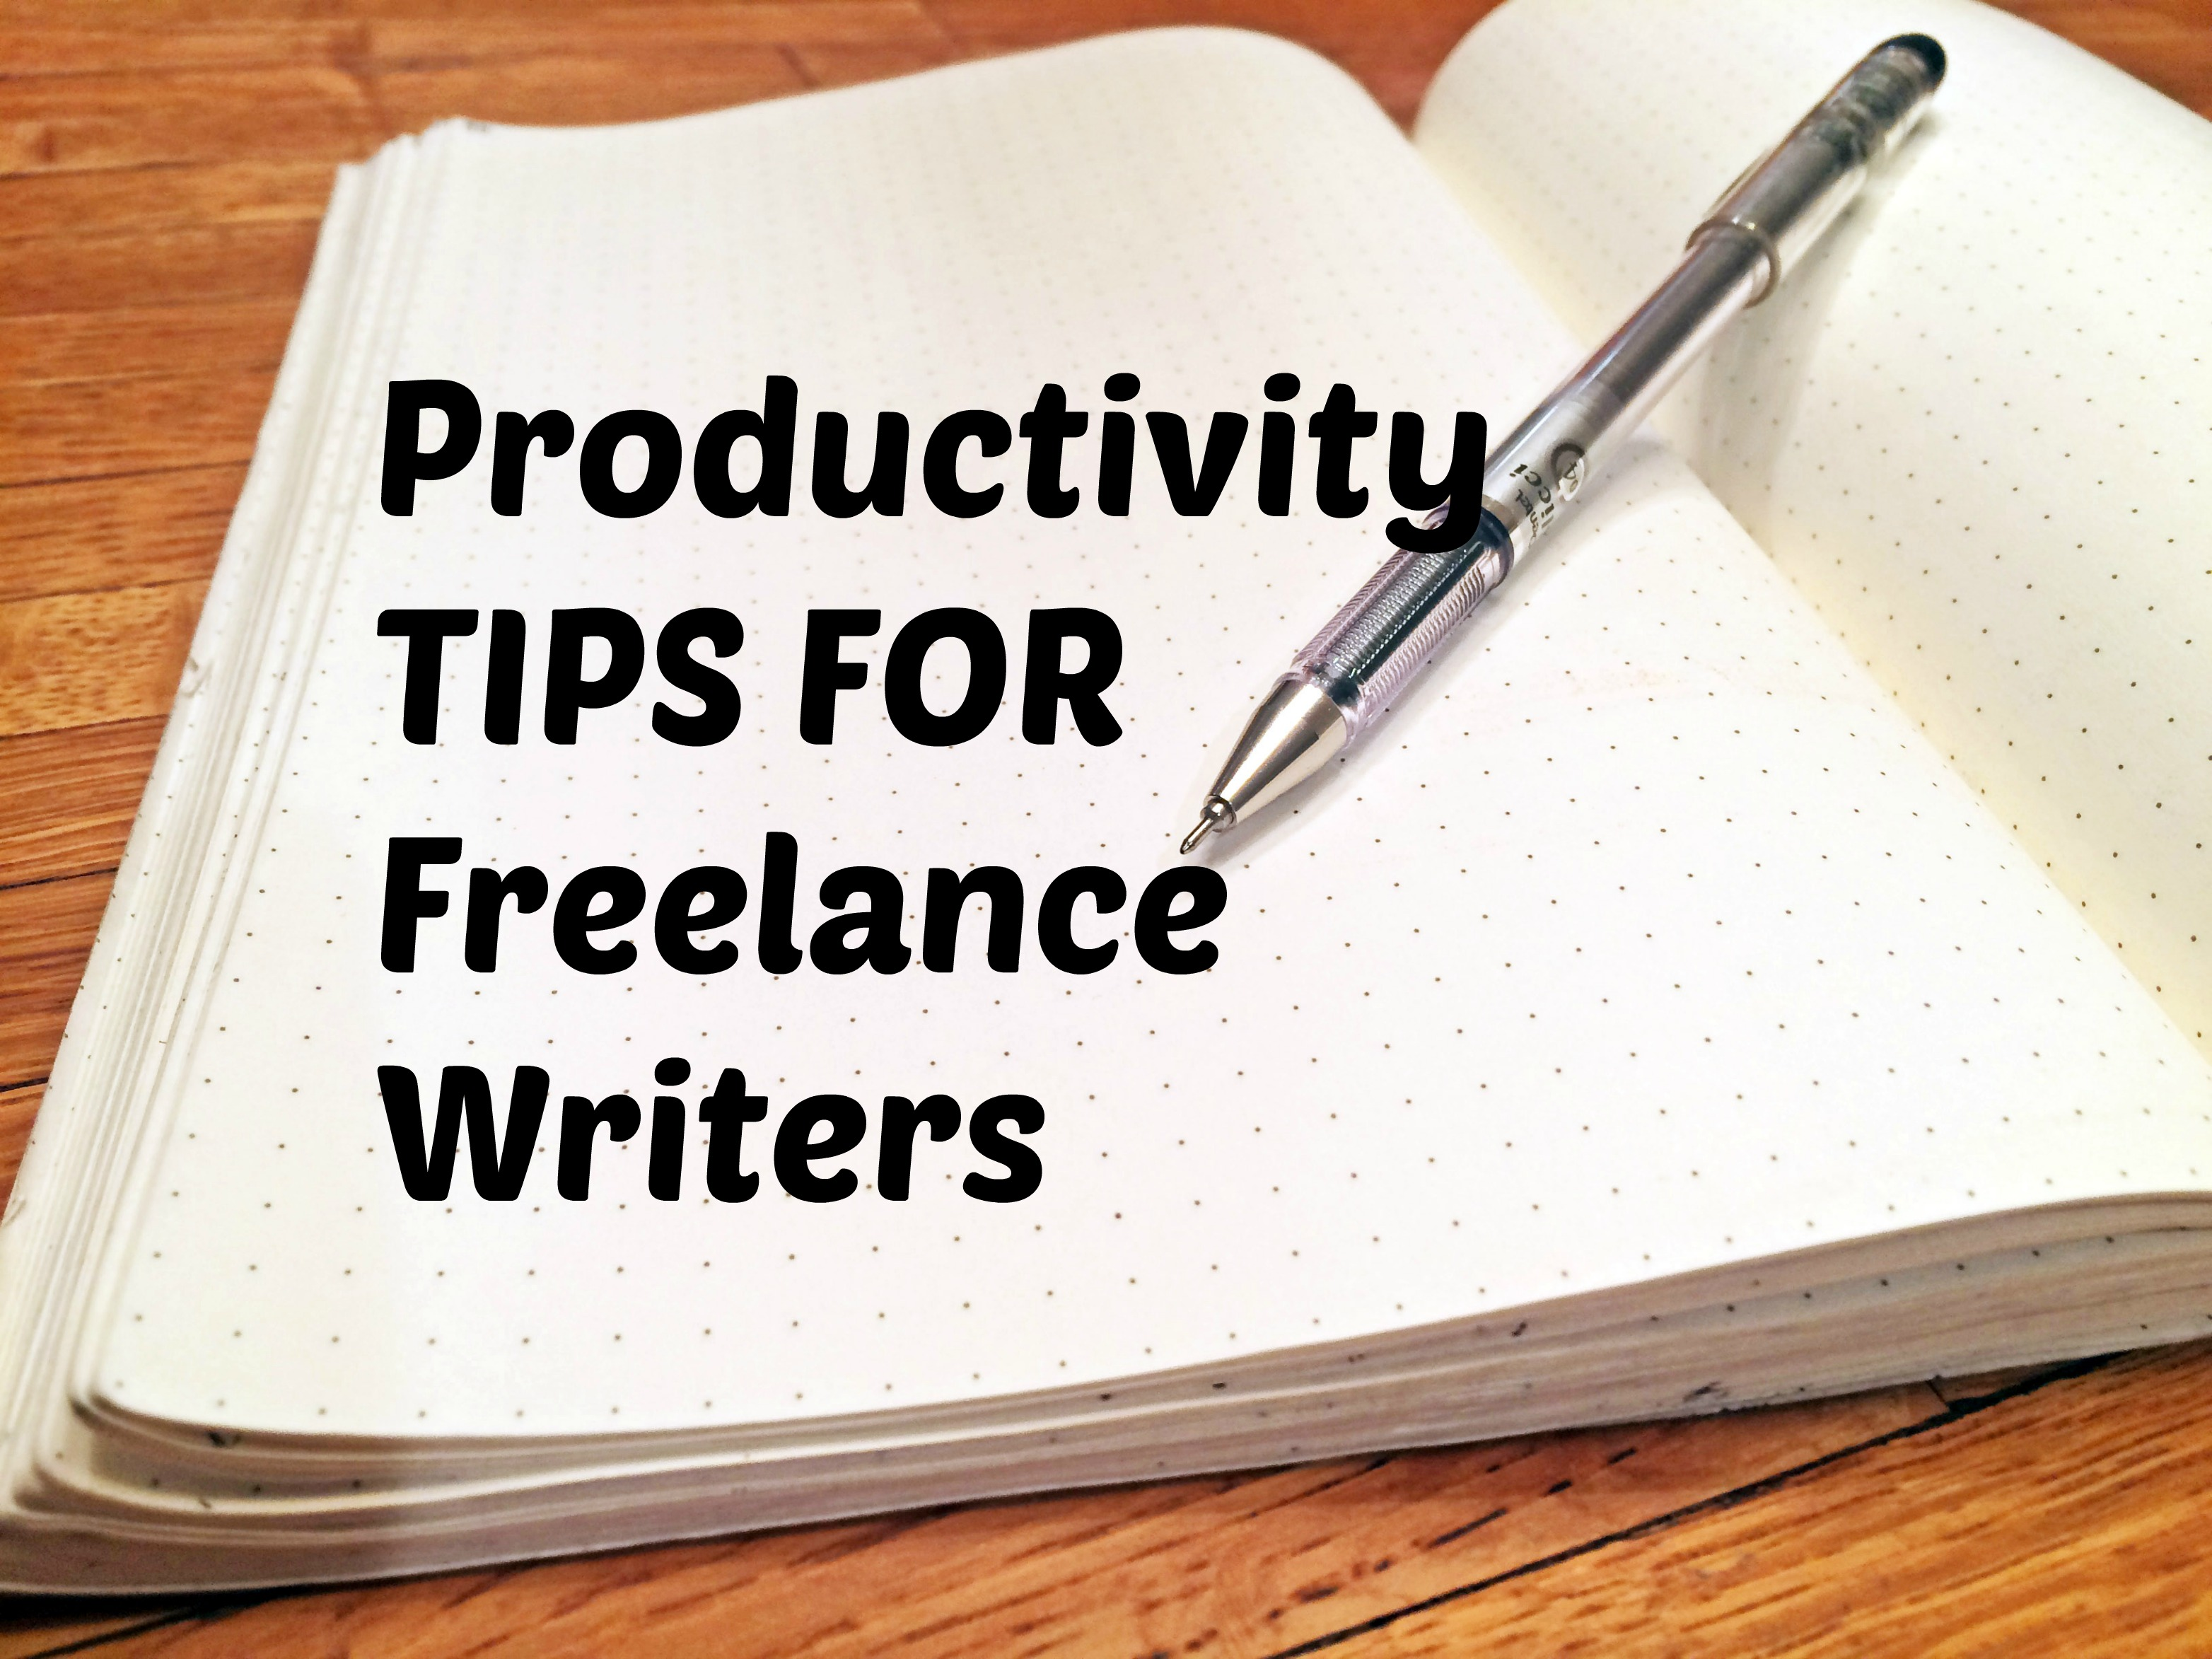 5 steps to productivity for lance writers noun conformist i make my living on the internet working for a variety of different sites and companies which means making my own hours and picking my own work